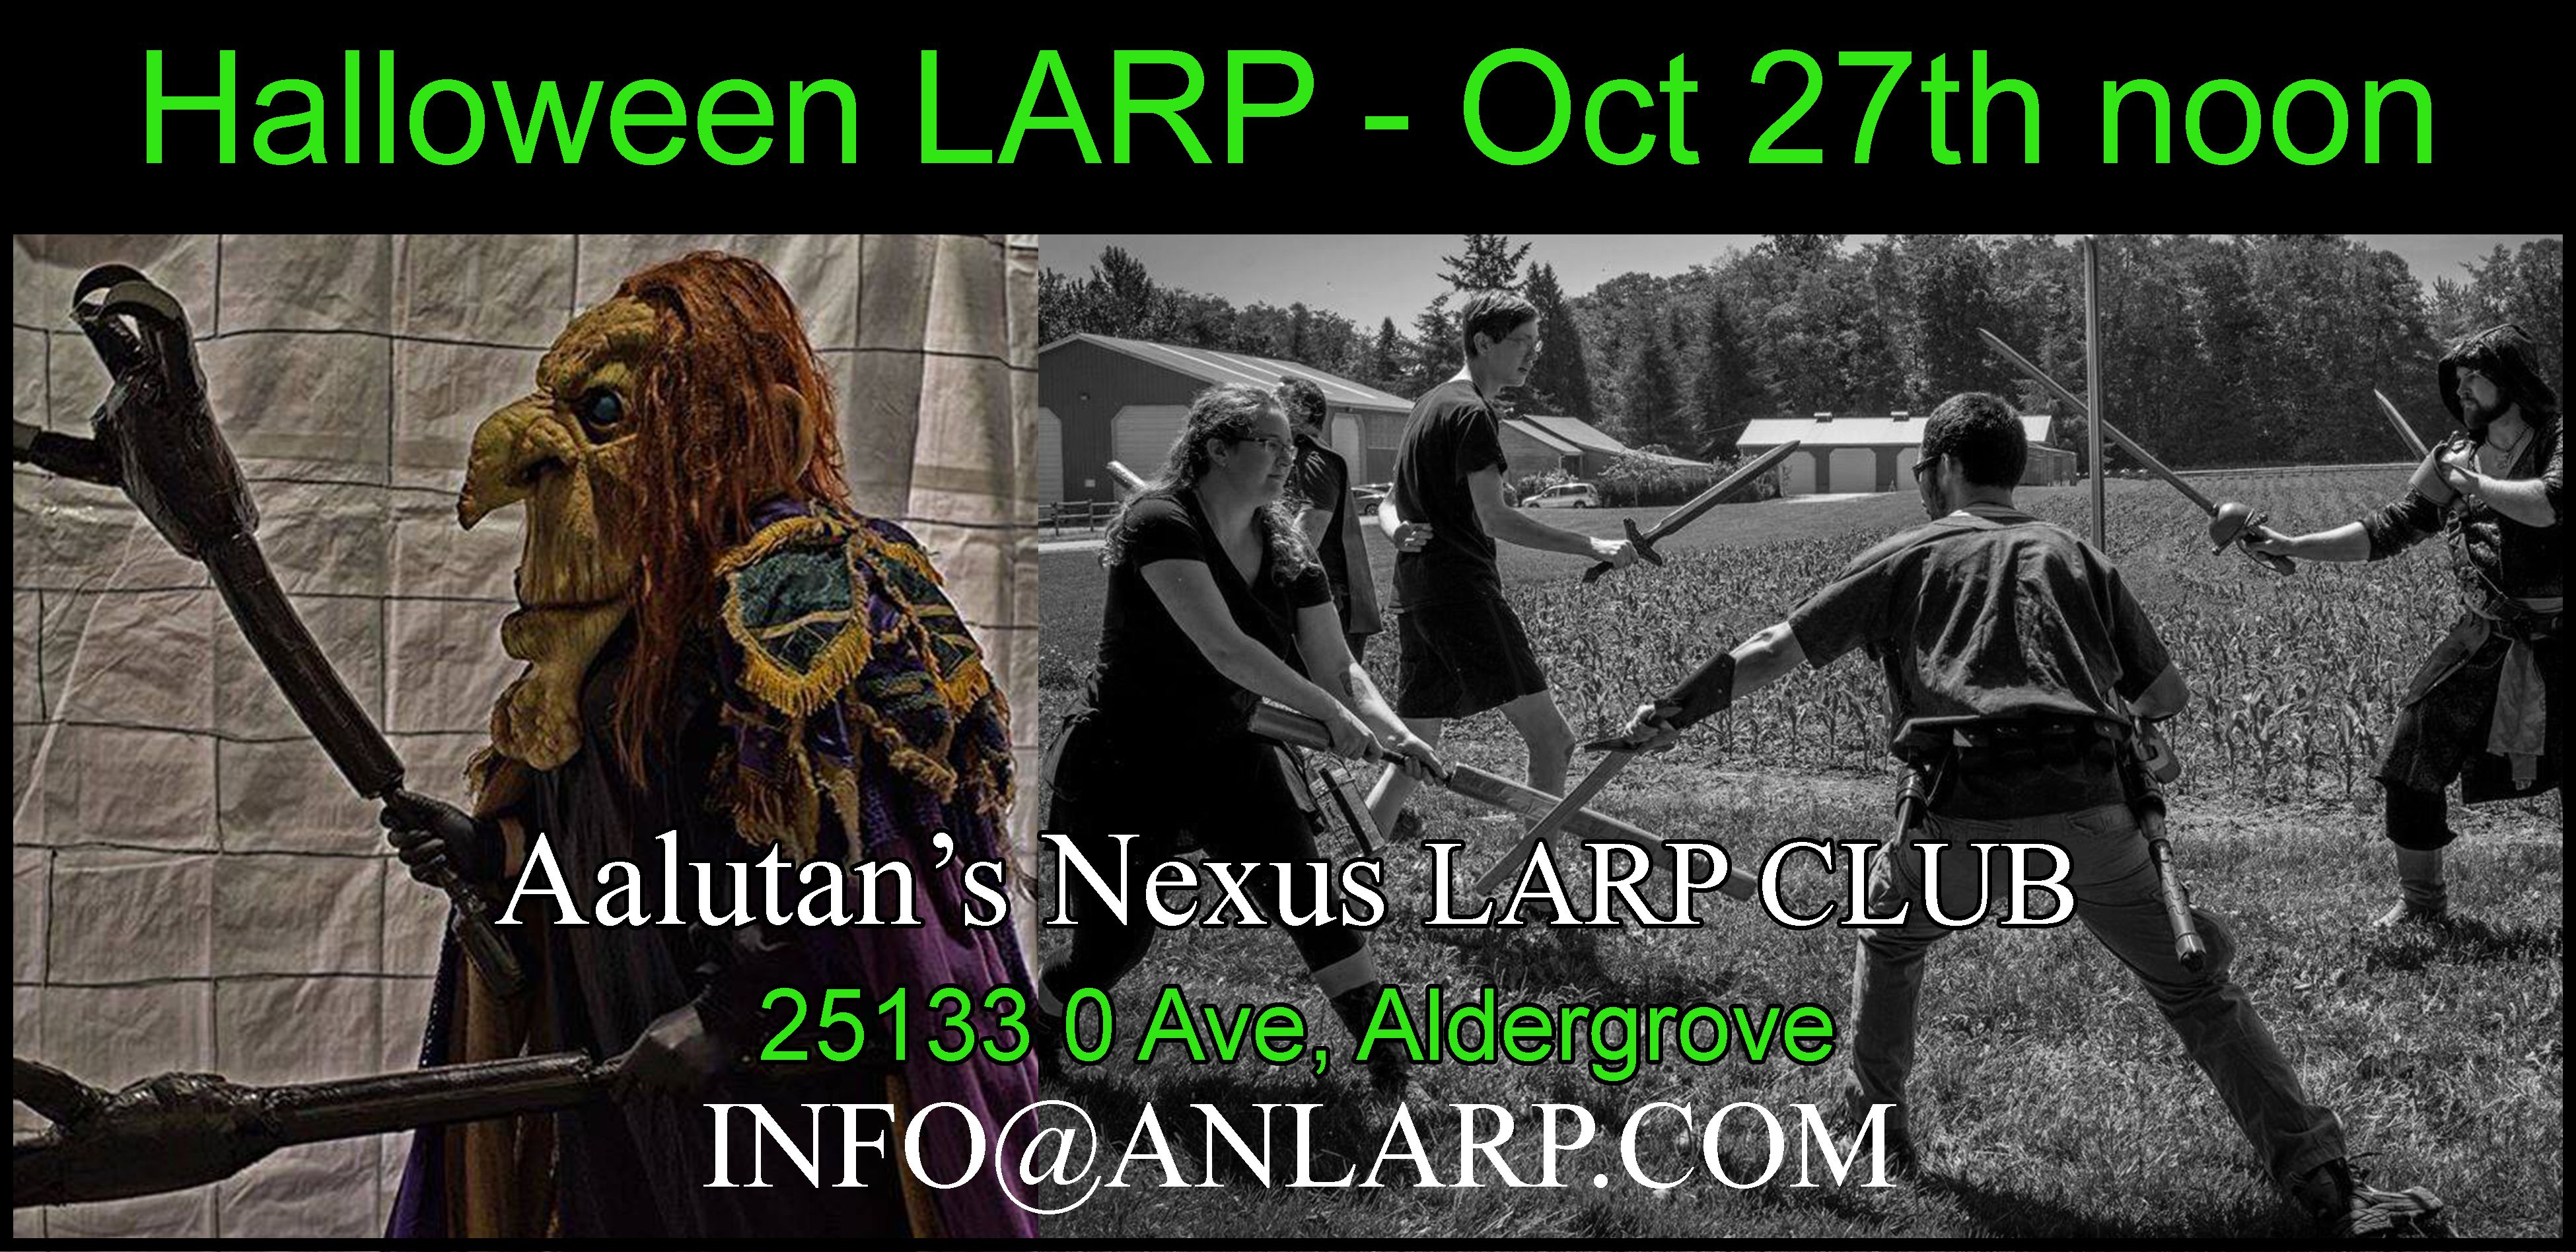 Come join our Halloween LARP game! New and old LARPers